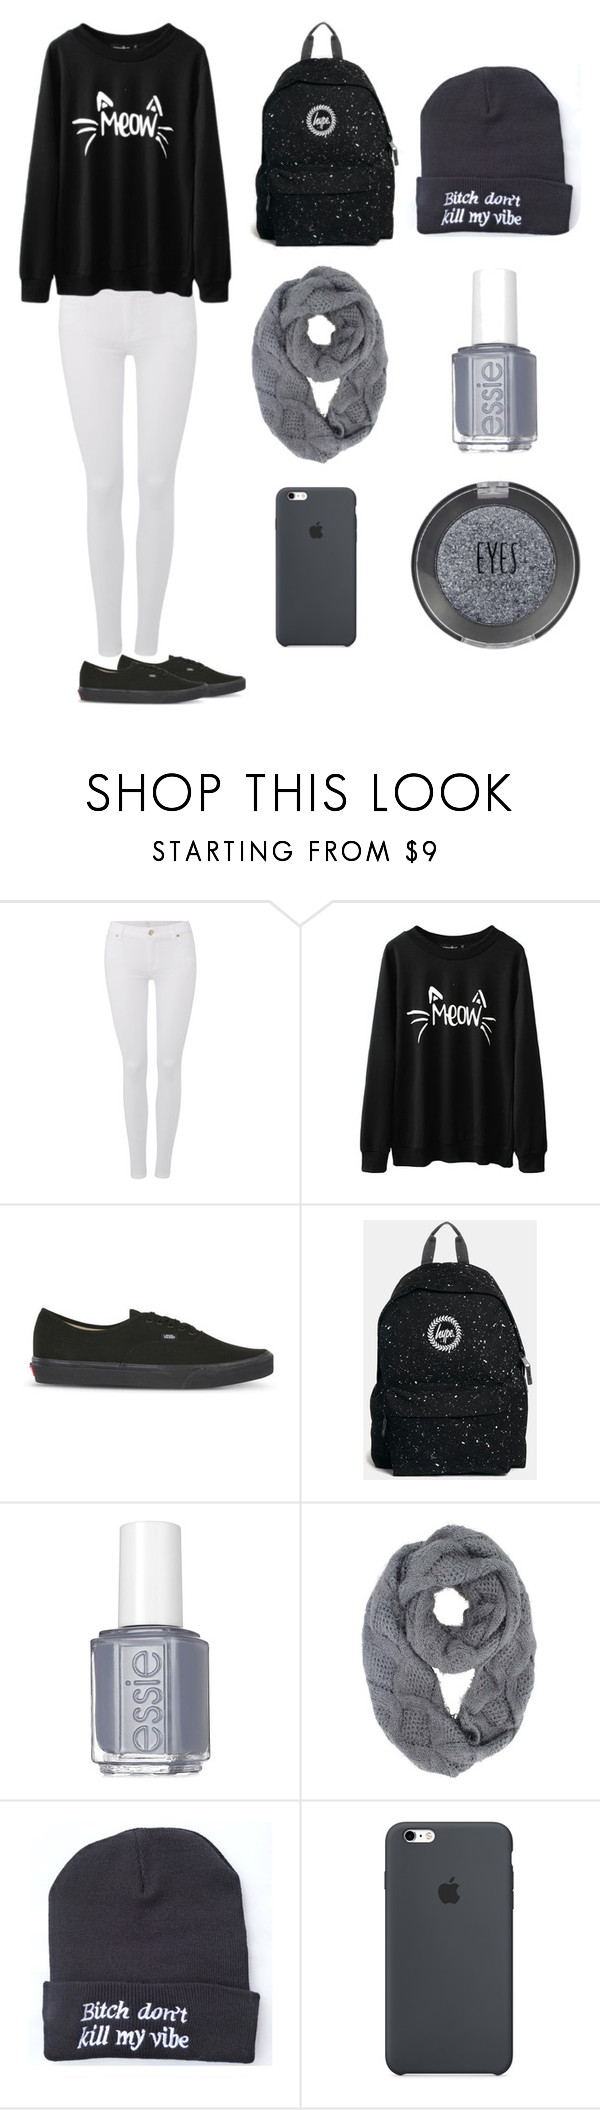 """""""Lazy days"""" by apparentlynotyou on Polyvore featuring 7 For All Mankind, Vans, Hype, Essie and Topshop"""